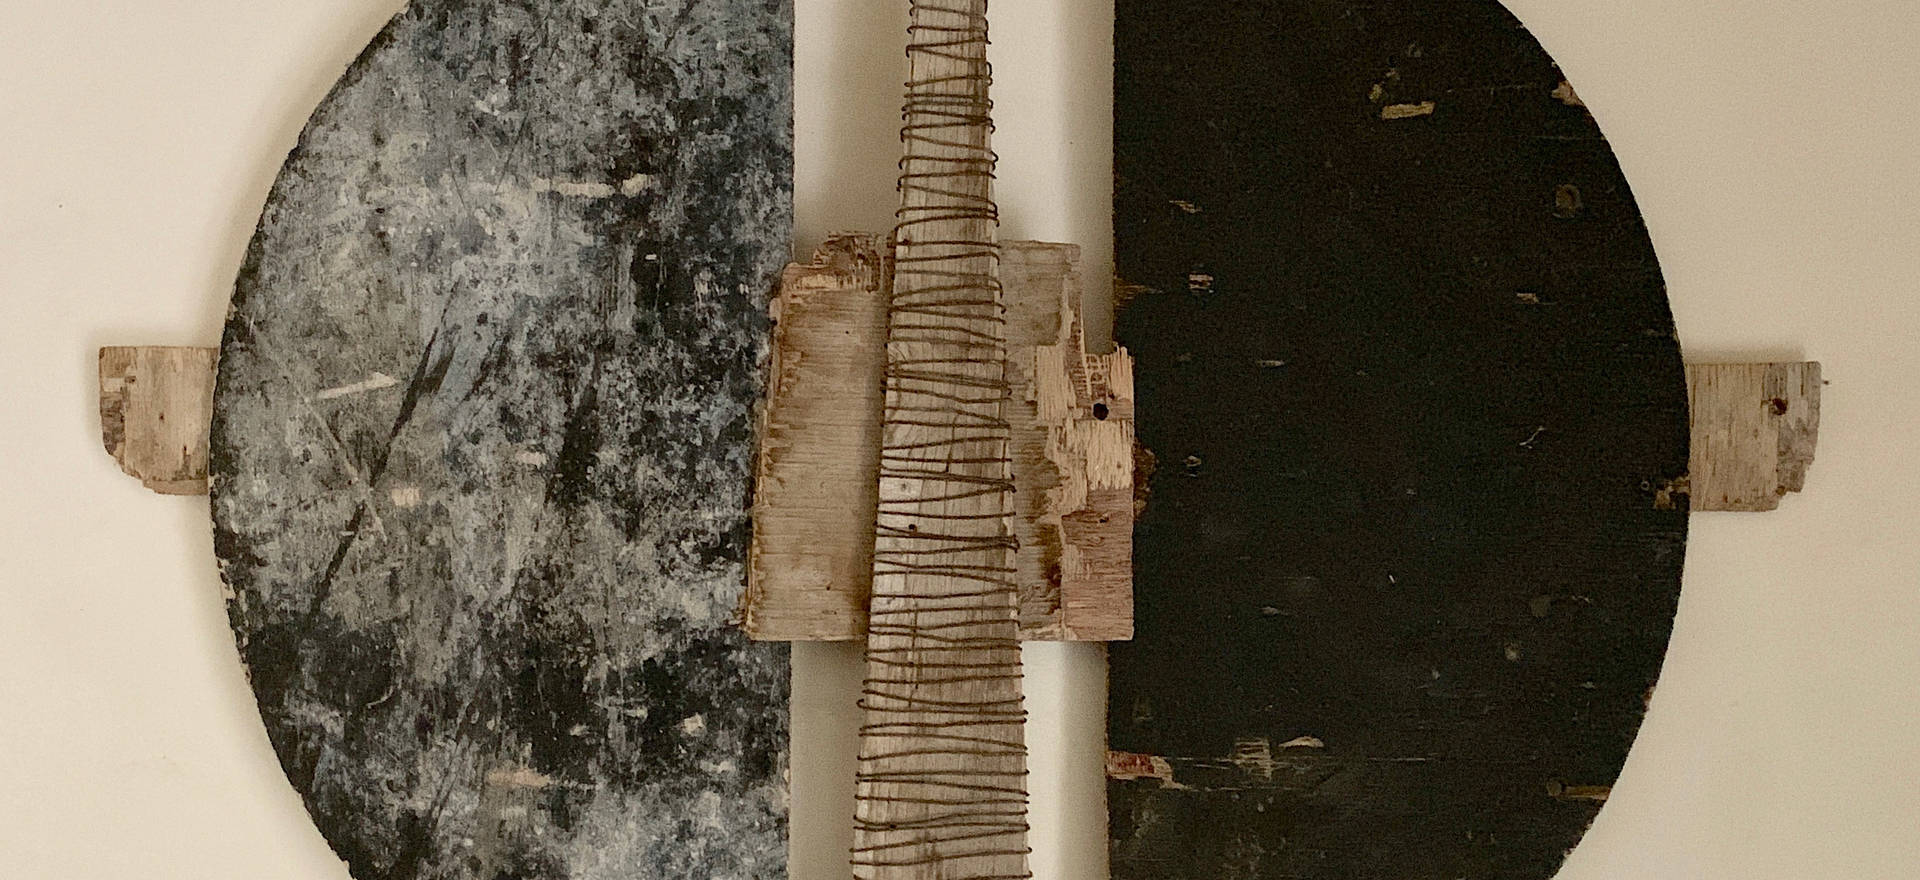 Formwork II, 2019. Formwork and annealed wire. 35.03 x 48.42 x 2.36 inches.  89 x 123 x 6 cm.